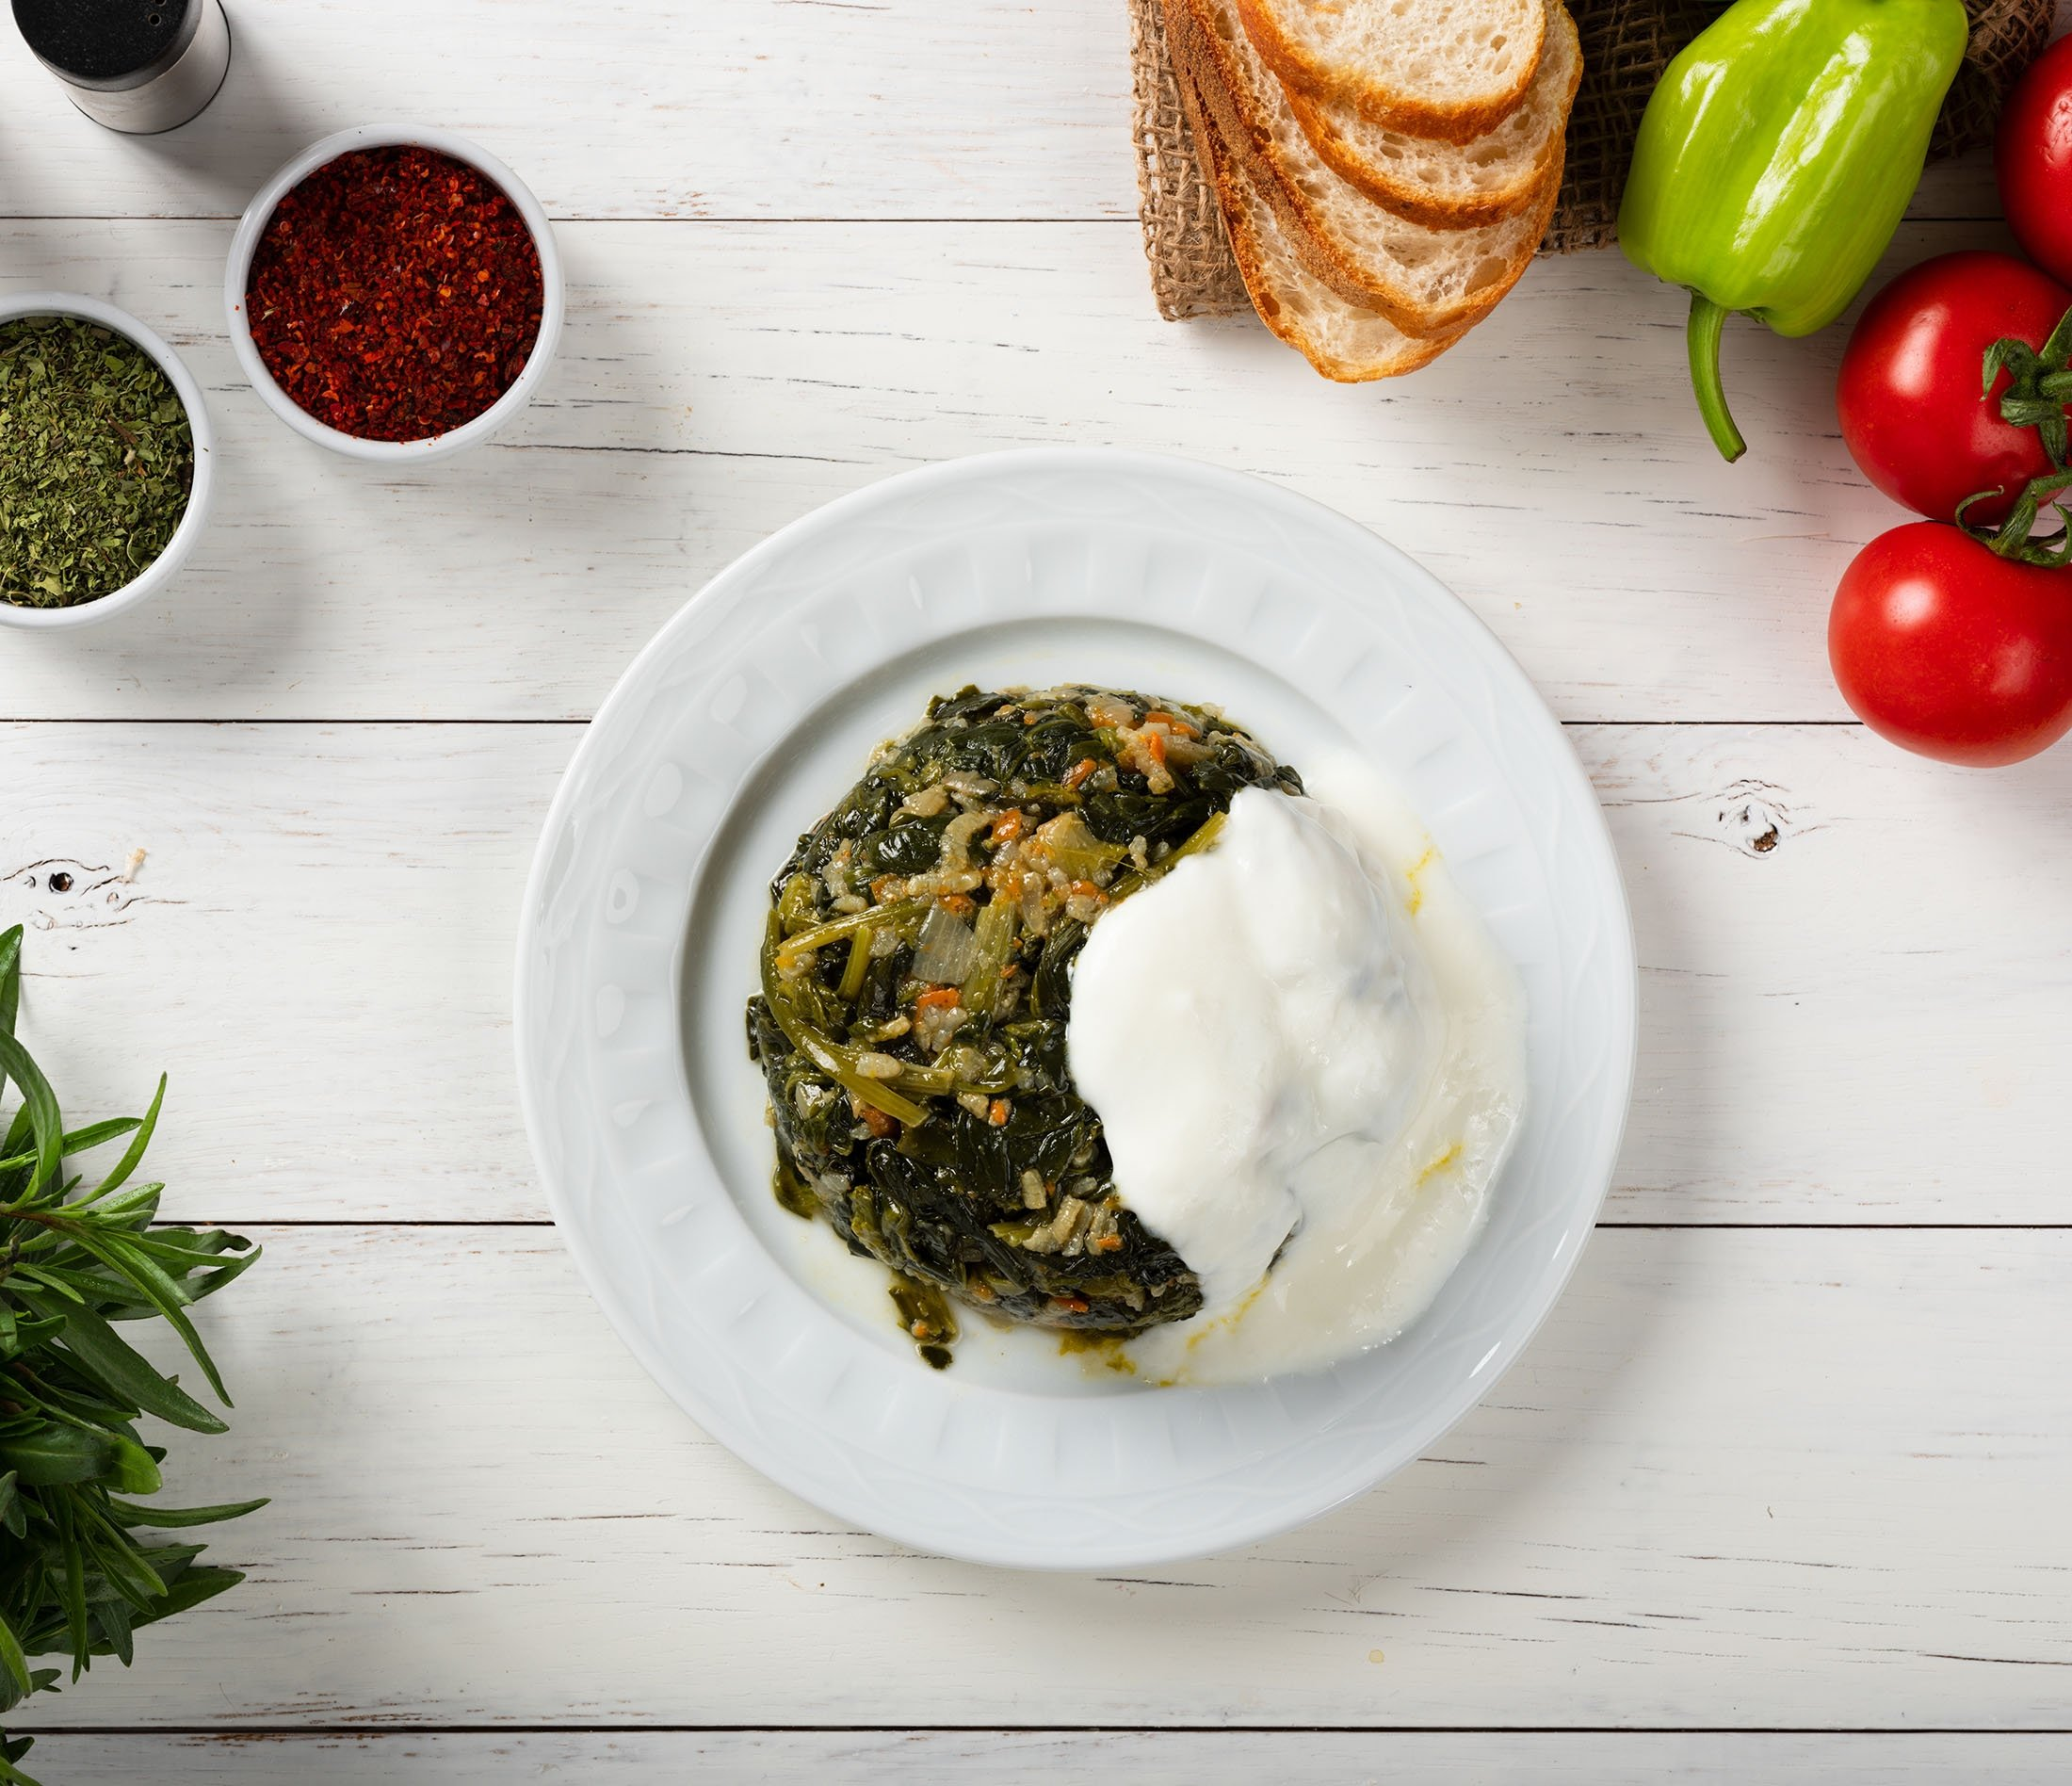 A tomatoey spinach stew is almost always consumed with yoıugrt in Turkey. (Shutterstock Photo)